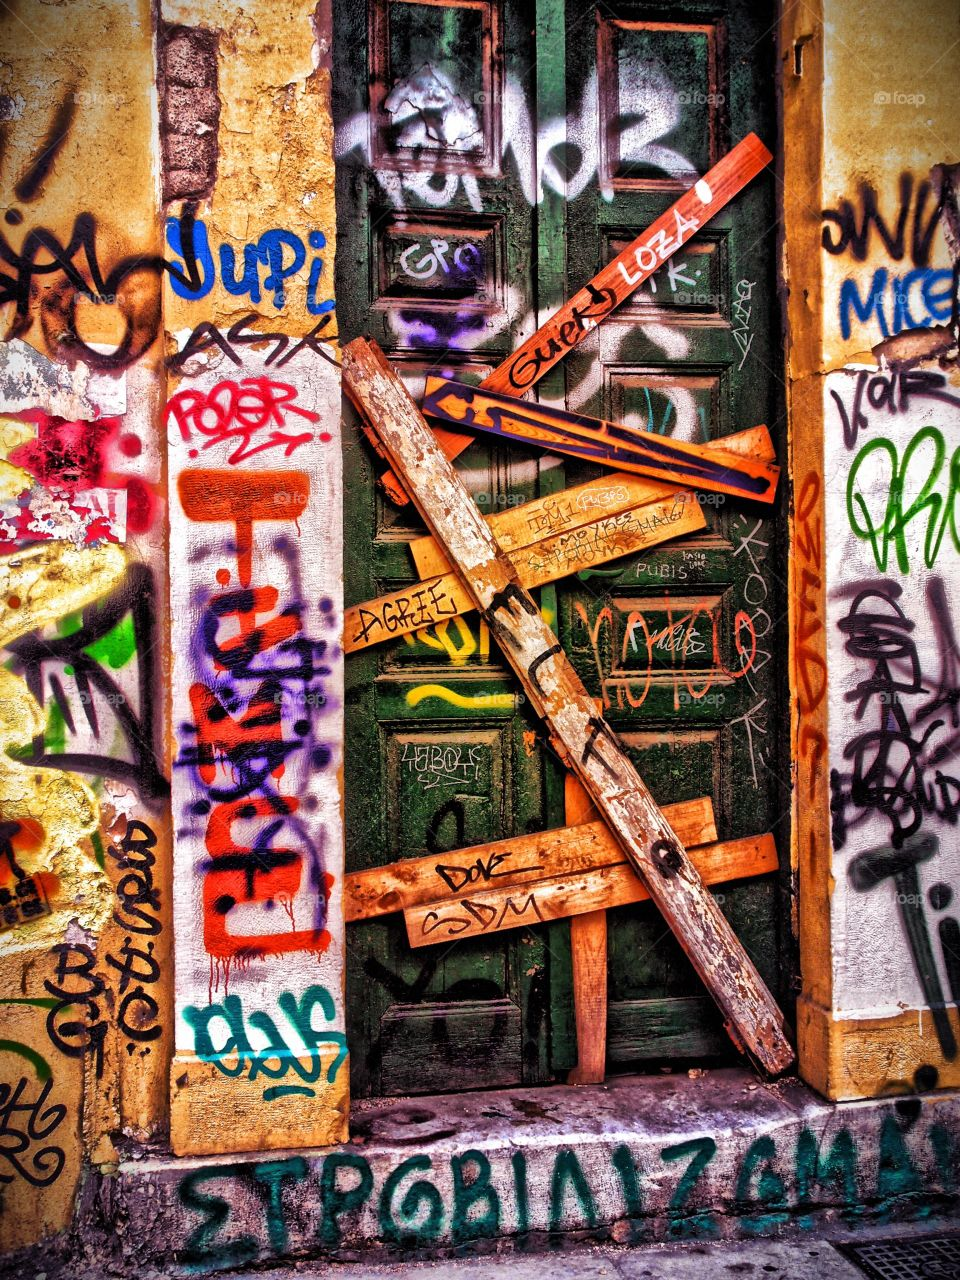 Graffiti In Greece, Greek Welcome, Street Photography, Artistic Image, Graffiti, Graphic Design, Abandoned Photography